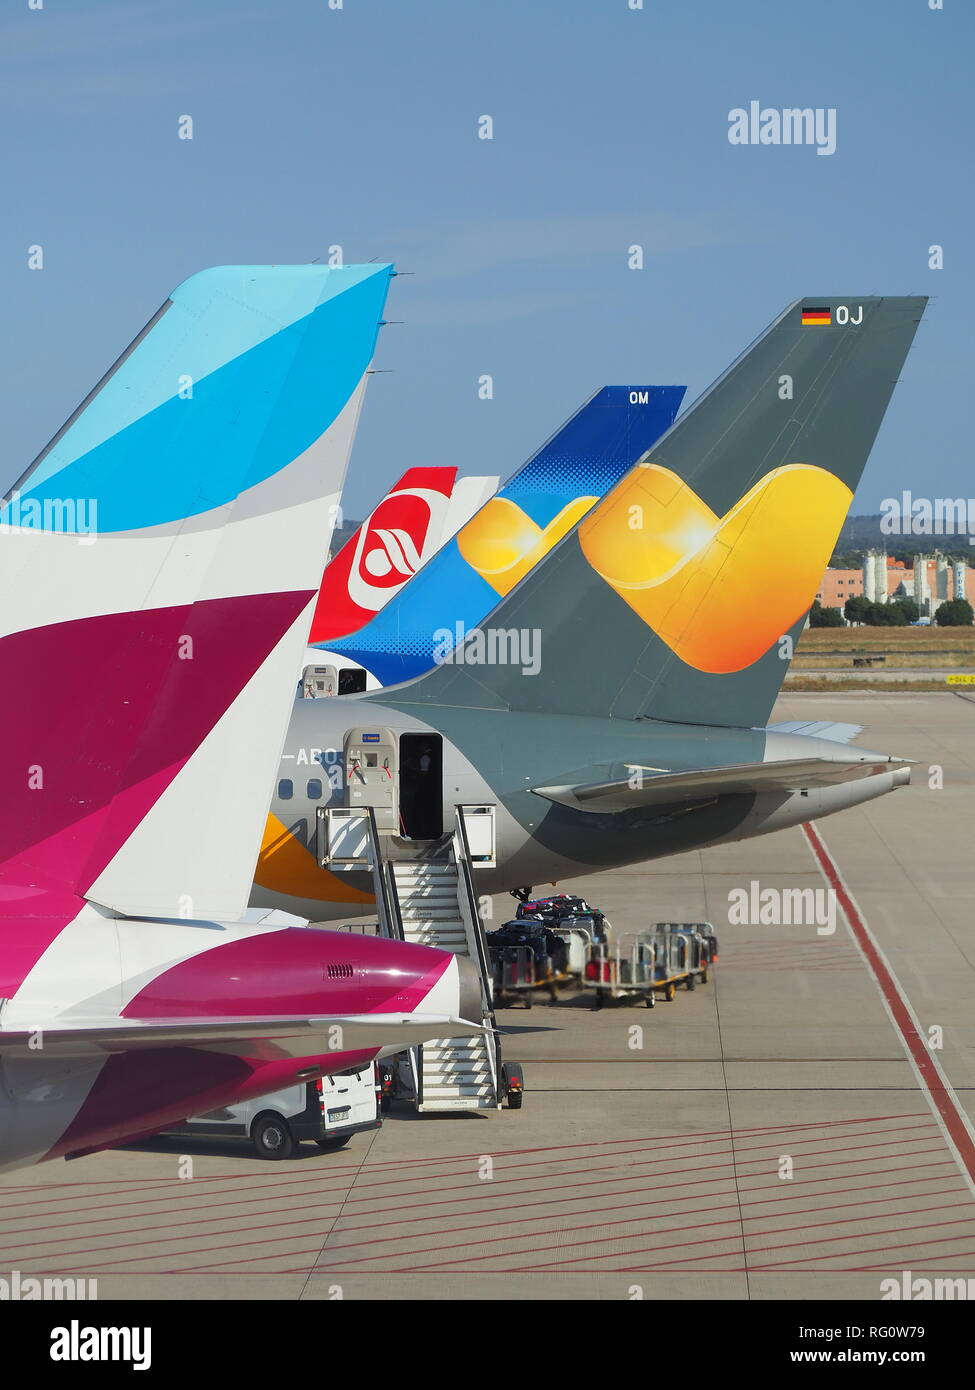 Group of vertical stabilizers of different airlines - Stock Image